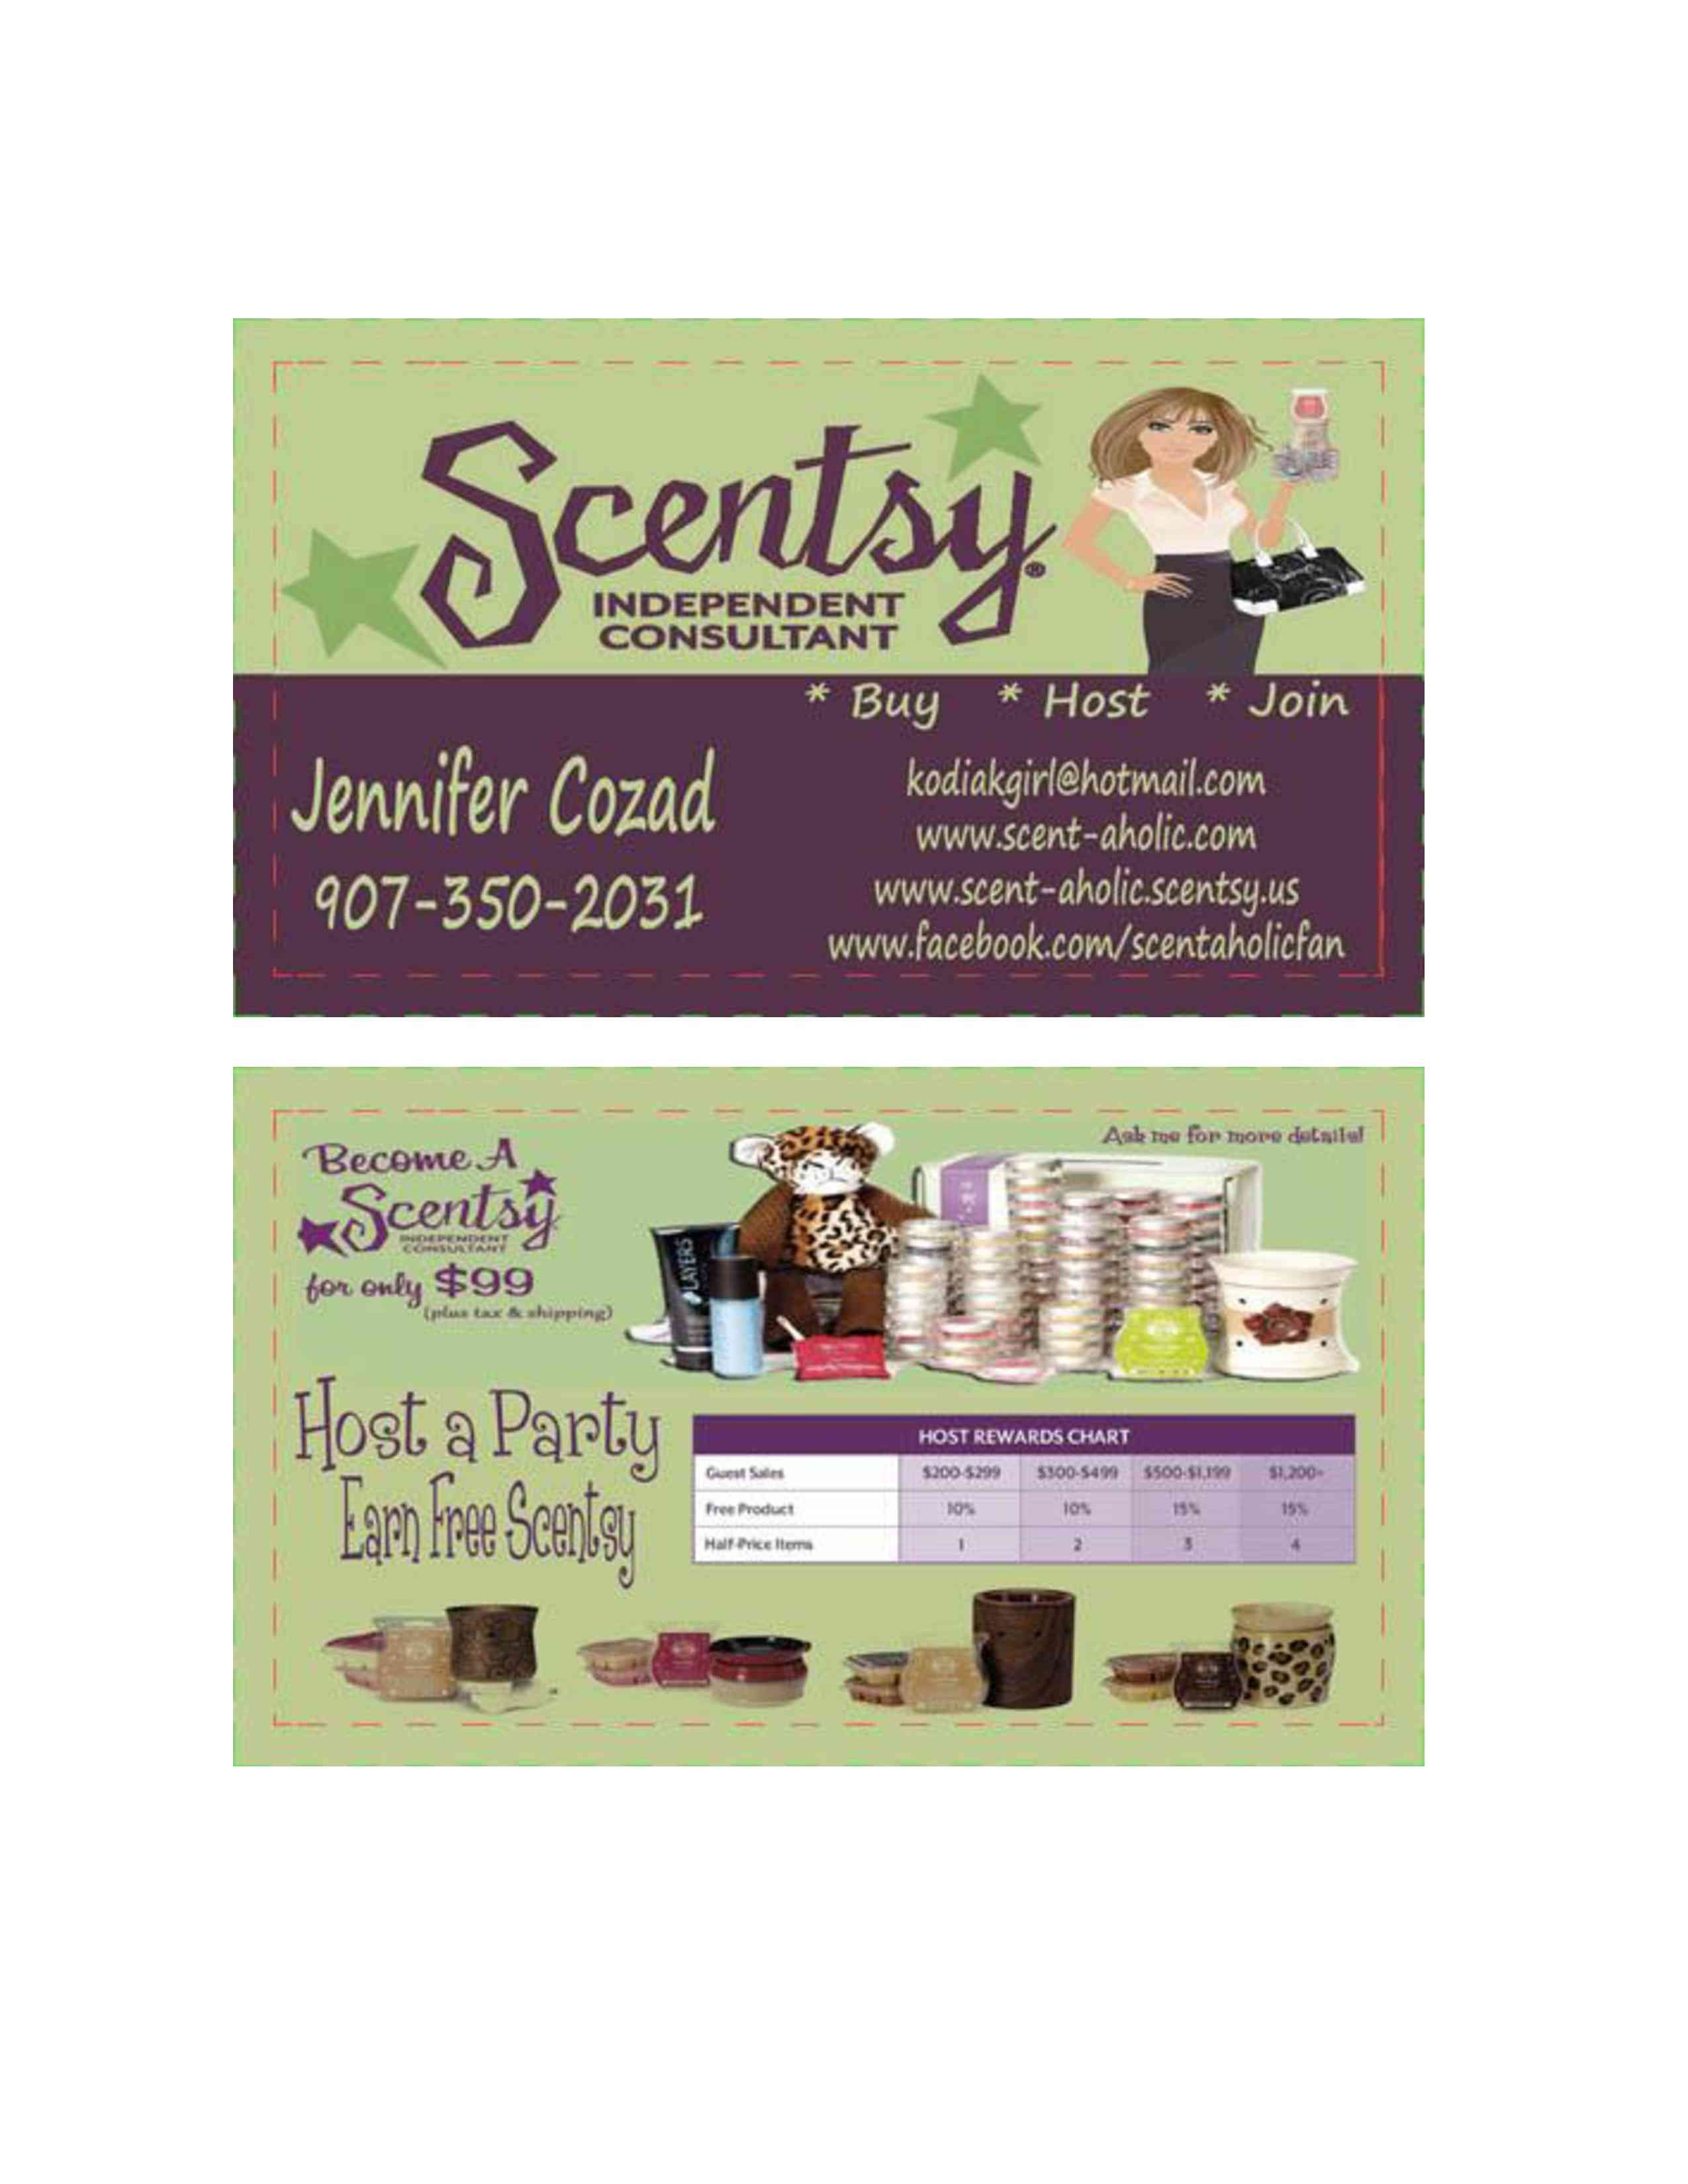 Scentsy Business Cards images